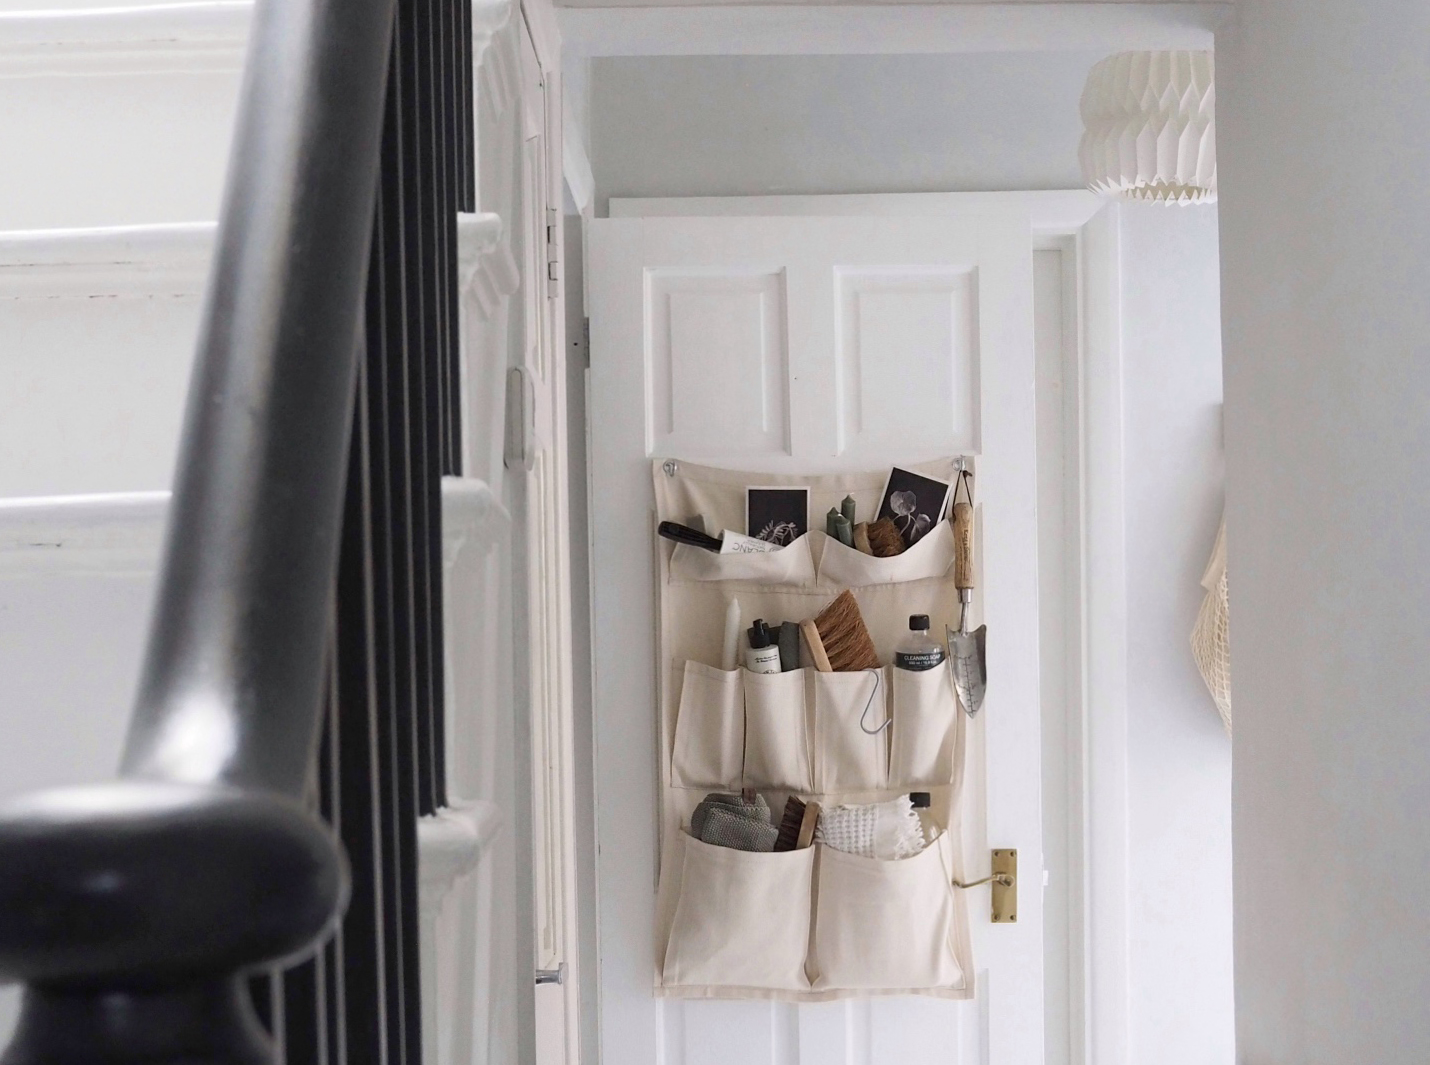 8 simple storage solutions to help organise small spaces